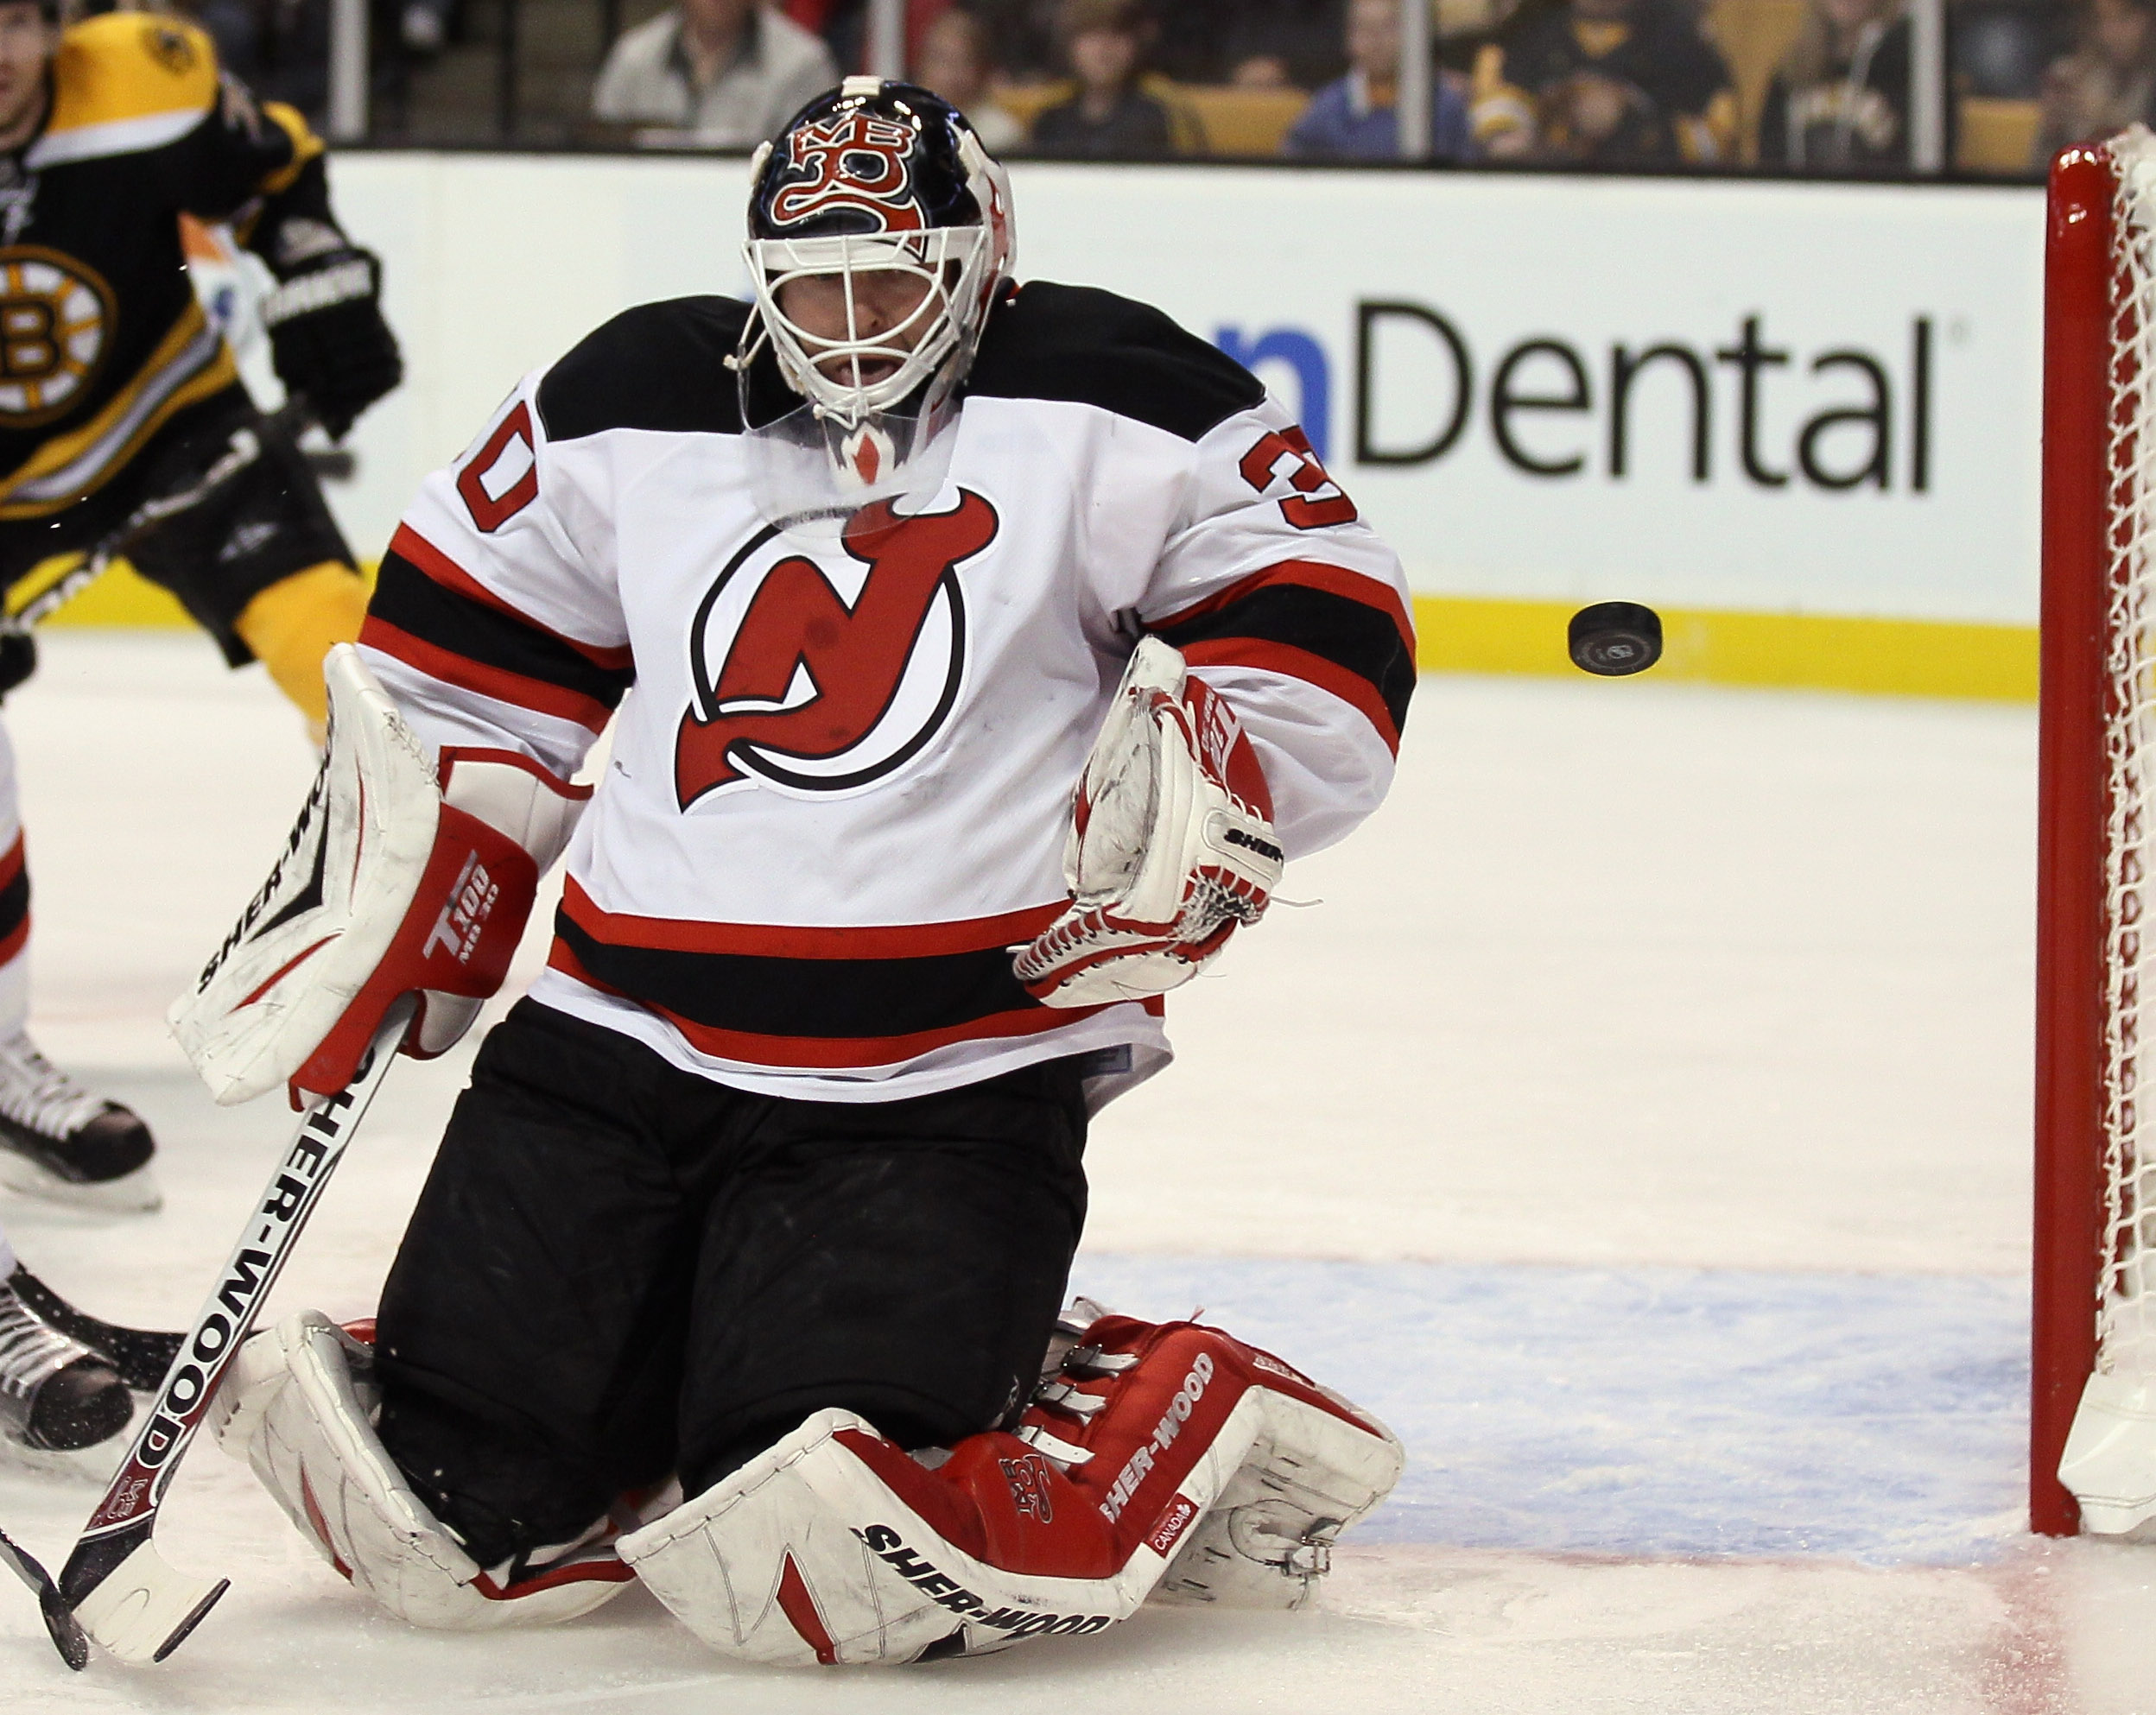 BOSTON - NOVEMBER 15:  Martin Brodeur #30 of the New Jersey Devils stops a shot in the first period against the Boston Bruins on November 15, 2010 at the TD Garden in Boston, Massachusetts.  (Photo by Elsa/Getty Images)